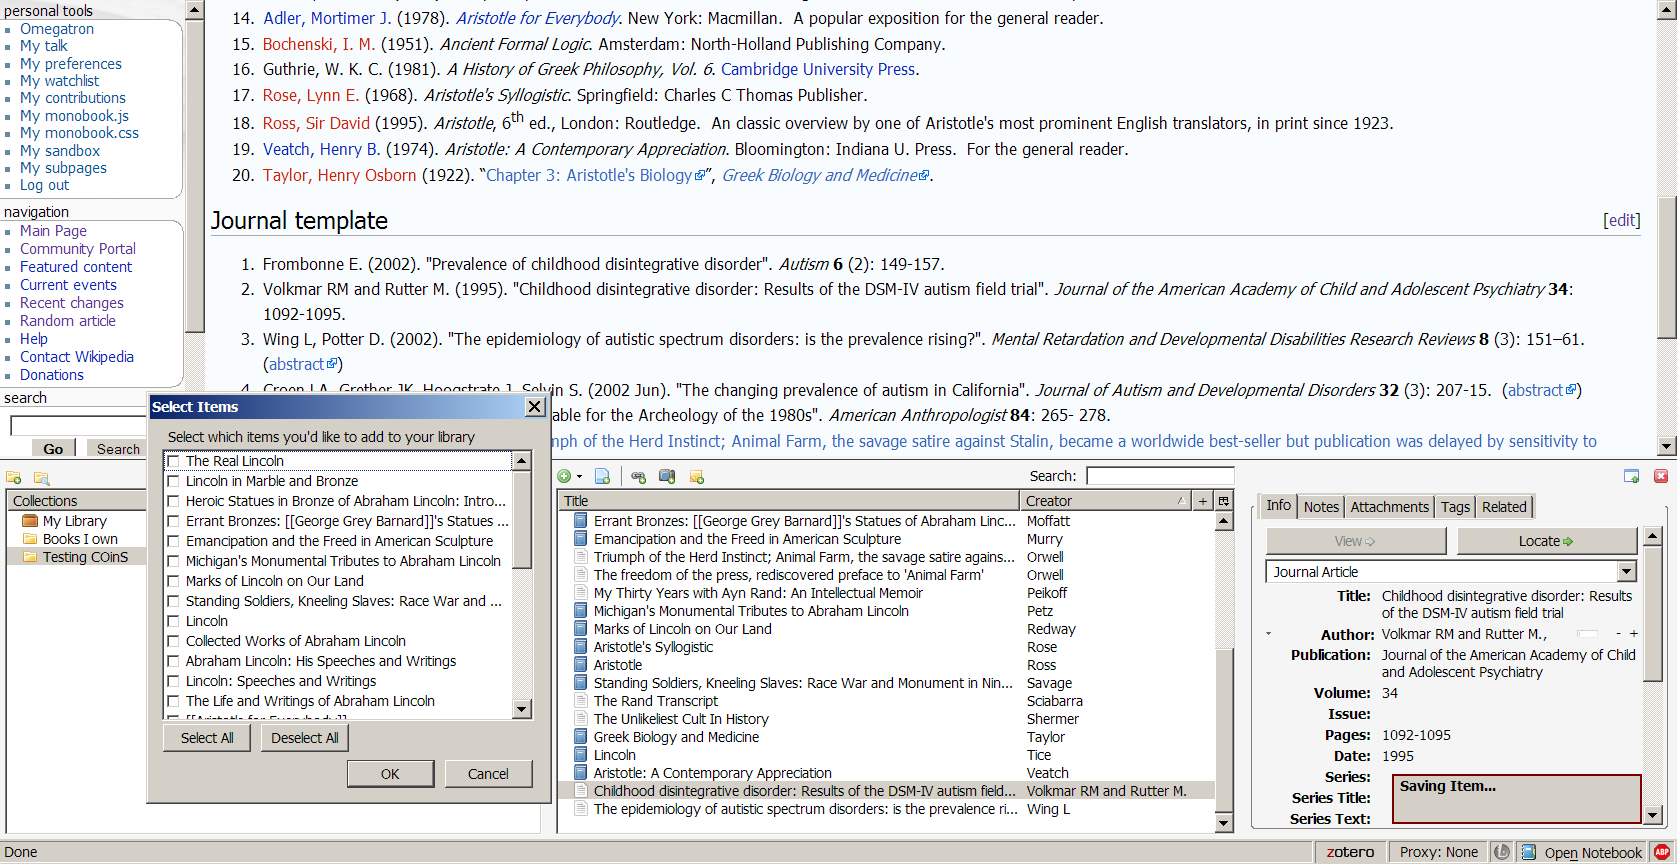 File:Zotero and COinS-enabled citation templates.png - Wikimedia Commons